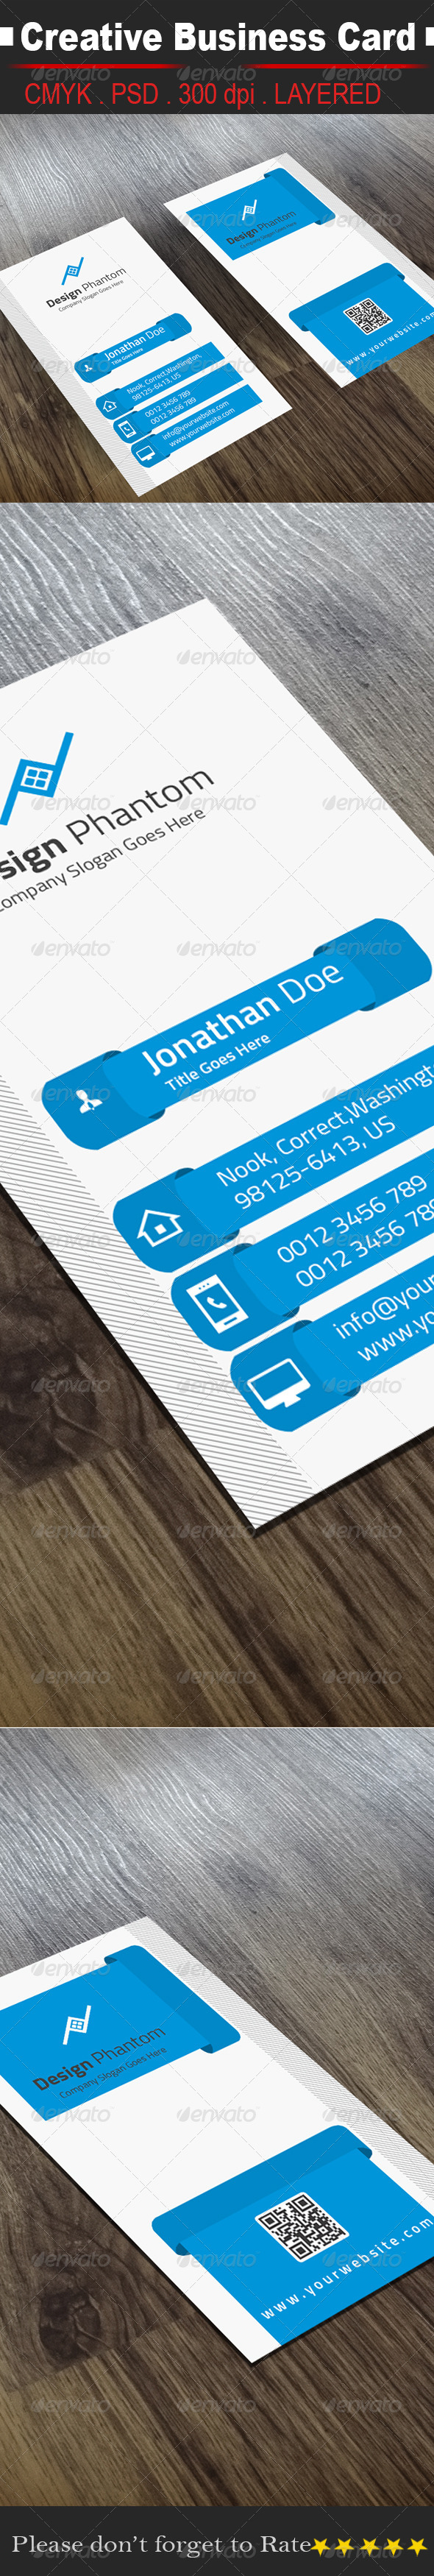 GraphicRiver Creative Business Card 8495079